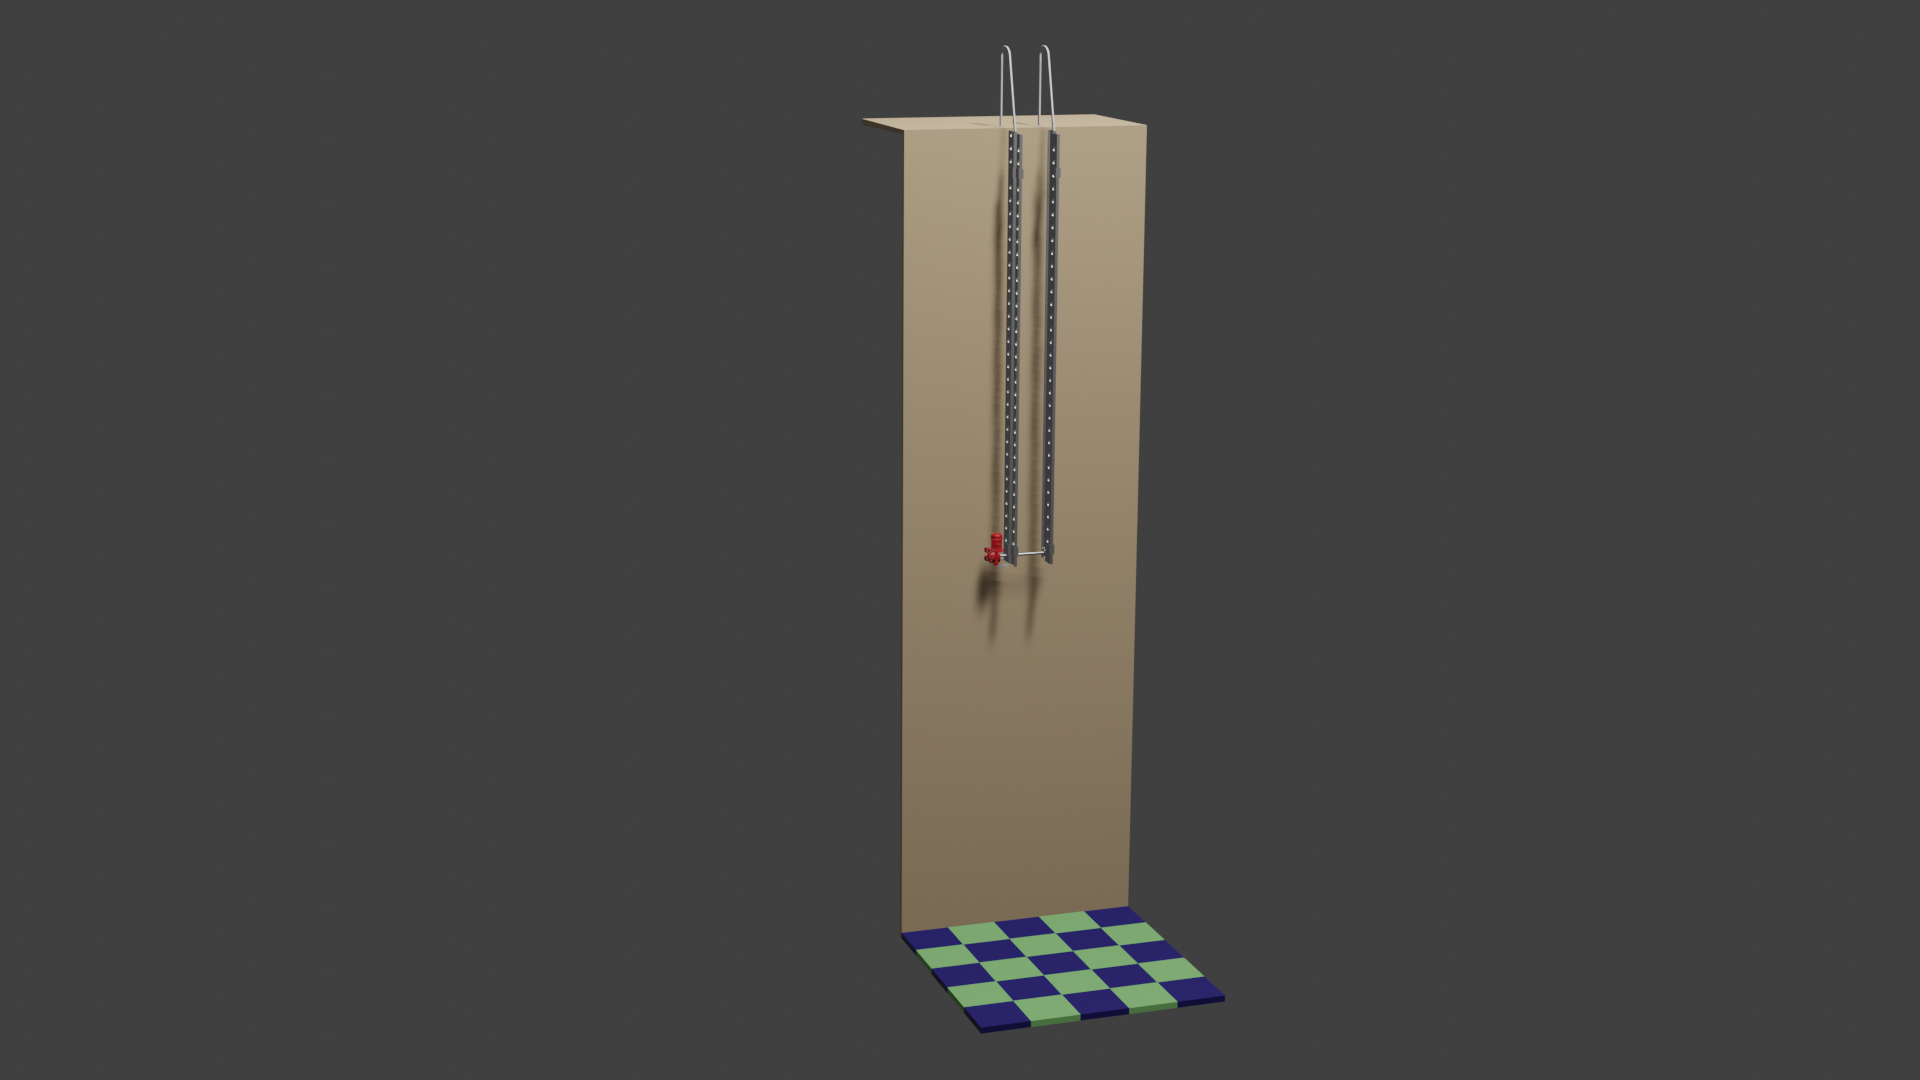 Extendable Ladder preview image 2